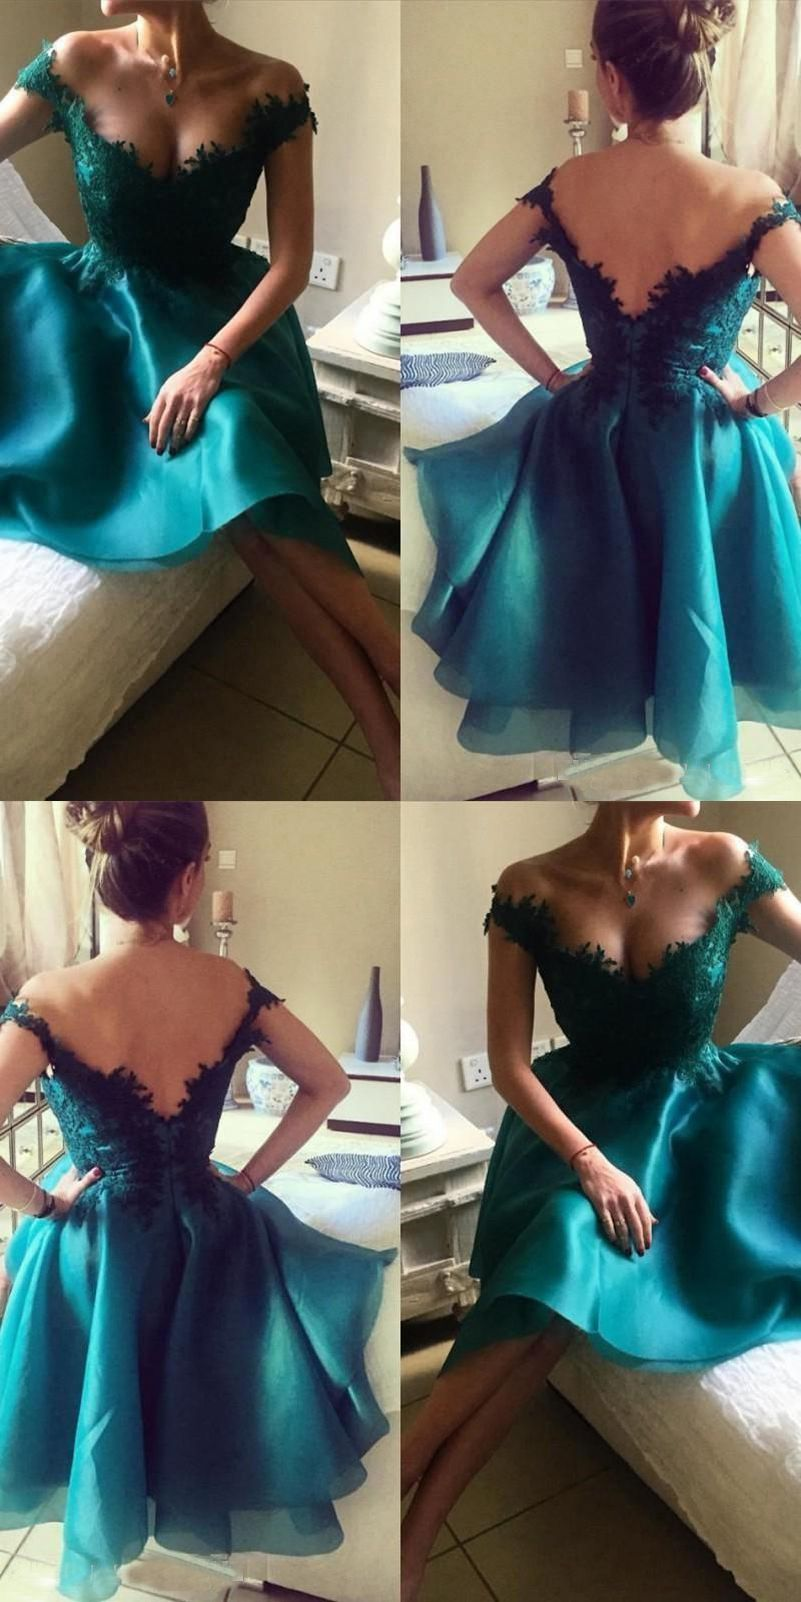 Cheap Homecoming Dresses,Short Homecoming Dresses,Off Shoulder Homecoming Dresses,Backless Cocktail Dresses,Graduation Dress Prom Gowns DS389 #backlesscocktaildress